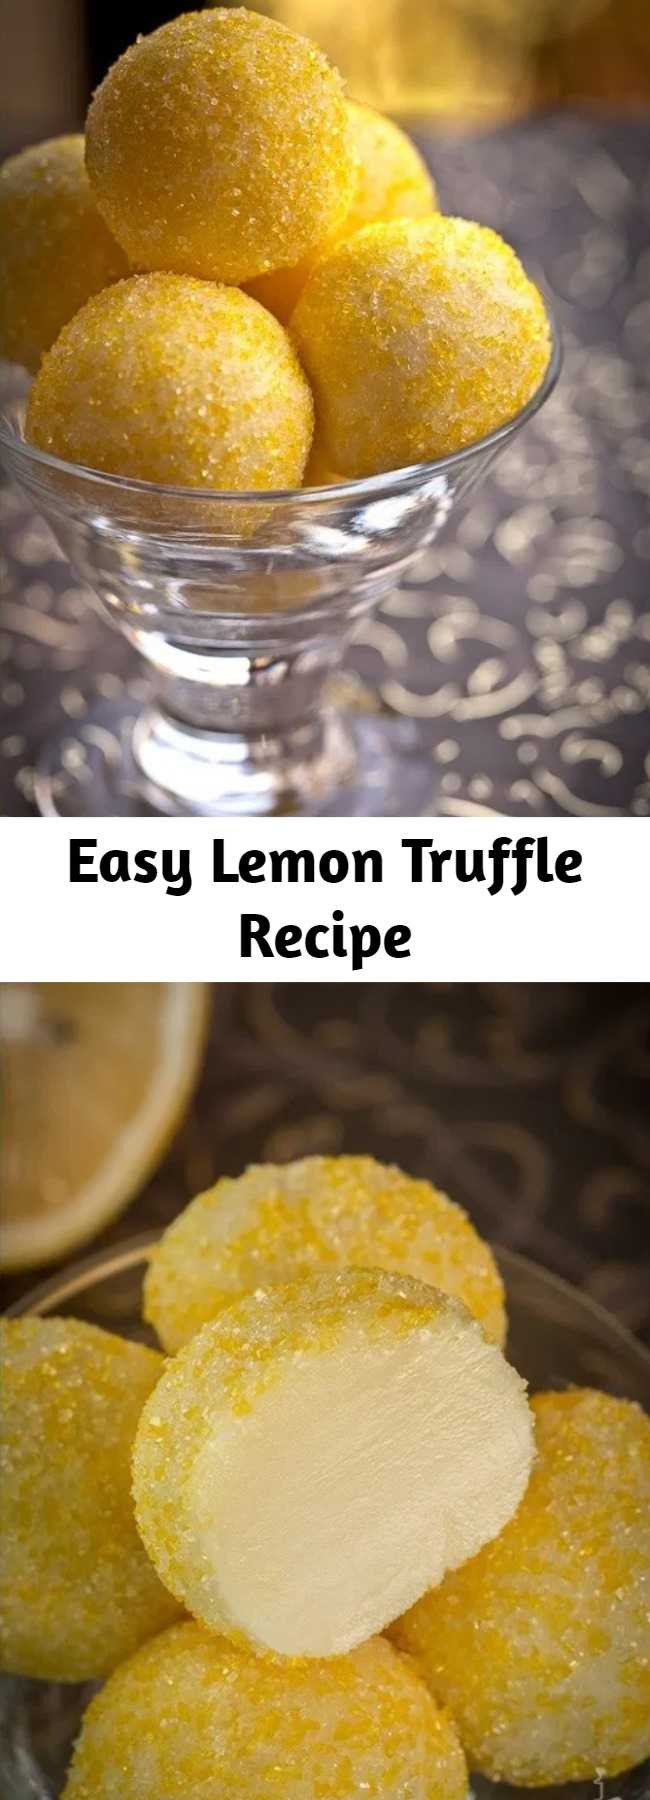 Easy Lemon Truffle Recipe - Lemon Truffles are made with just a couple of ingredients and are super easy to put together. If you love lemon, these little no bake dessert treats will become your favorite quick!